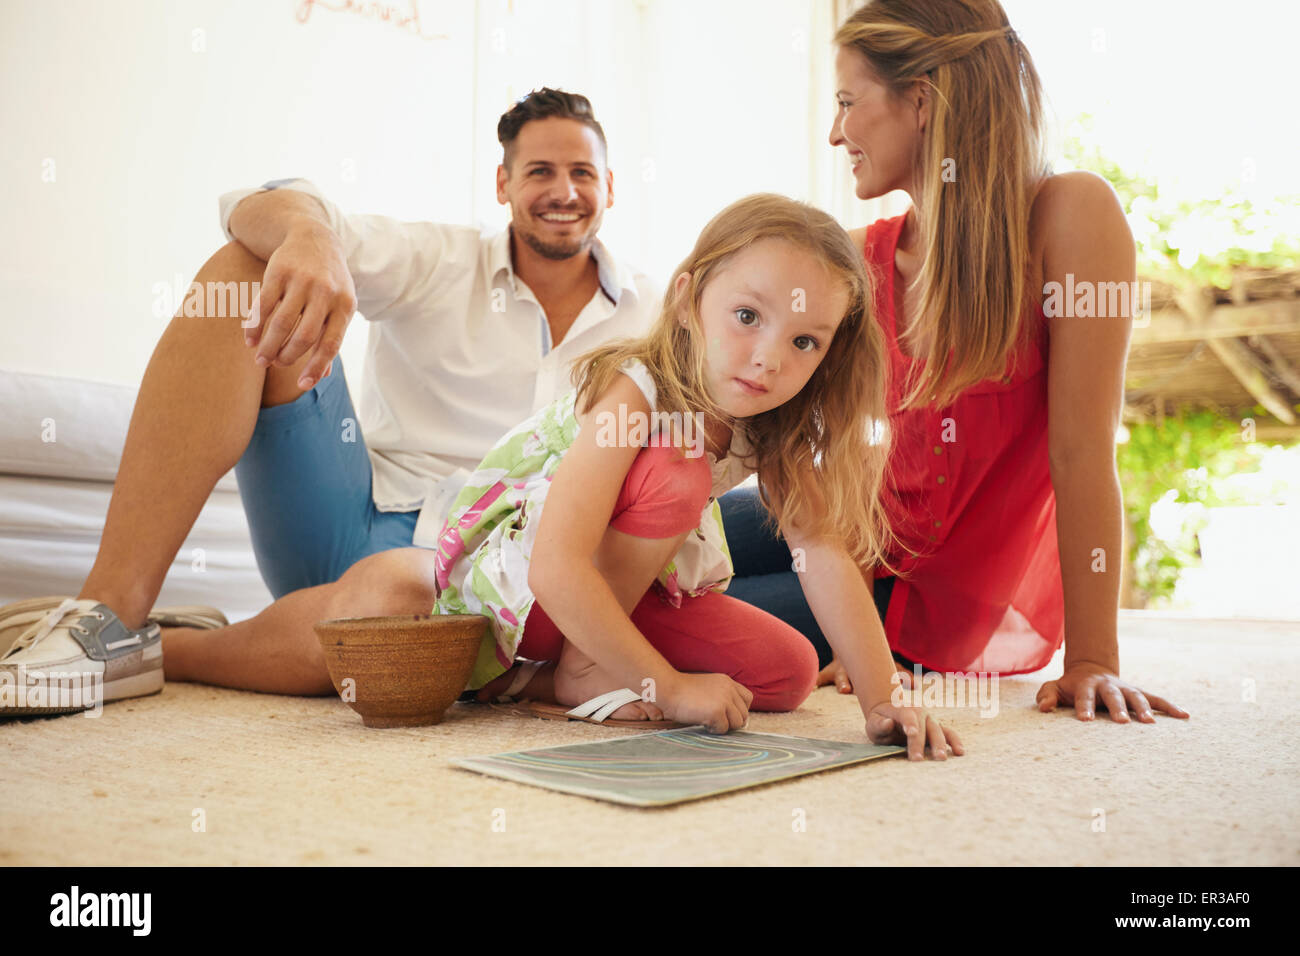 Tourné à l'intérieur de cute little girl painting avec ses parents assis derrière elle. Photo Stock